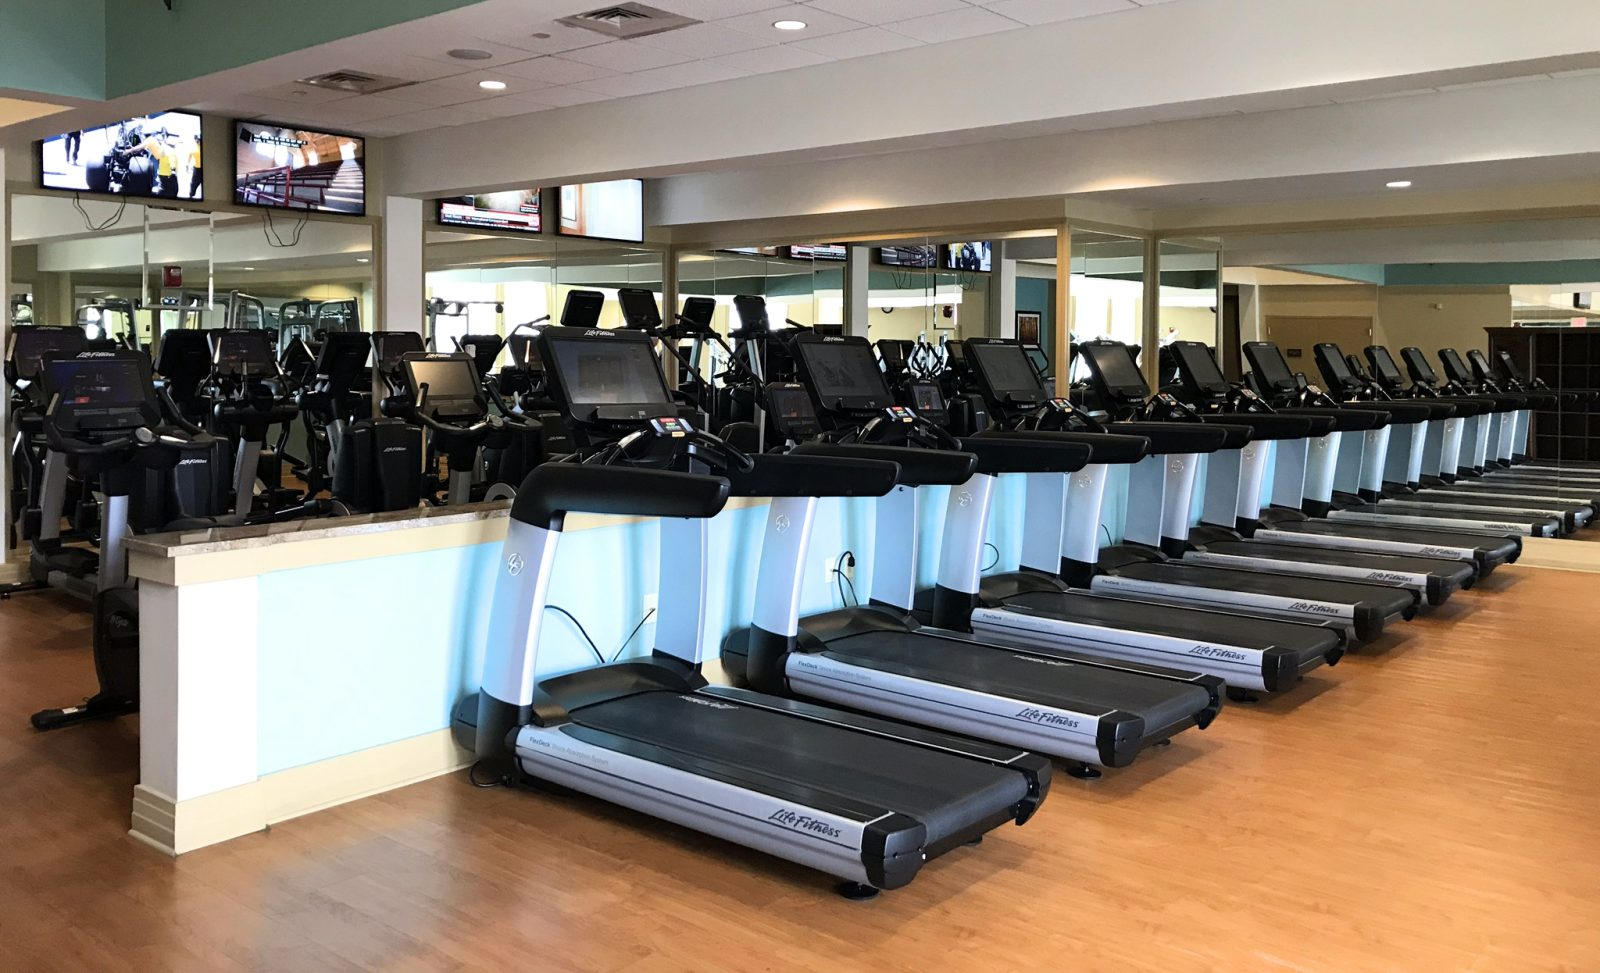 resort fitness center with cardio machines and televisions